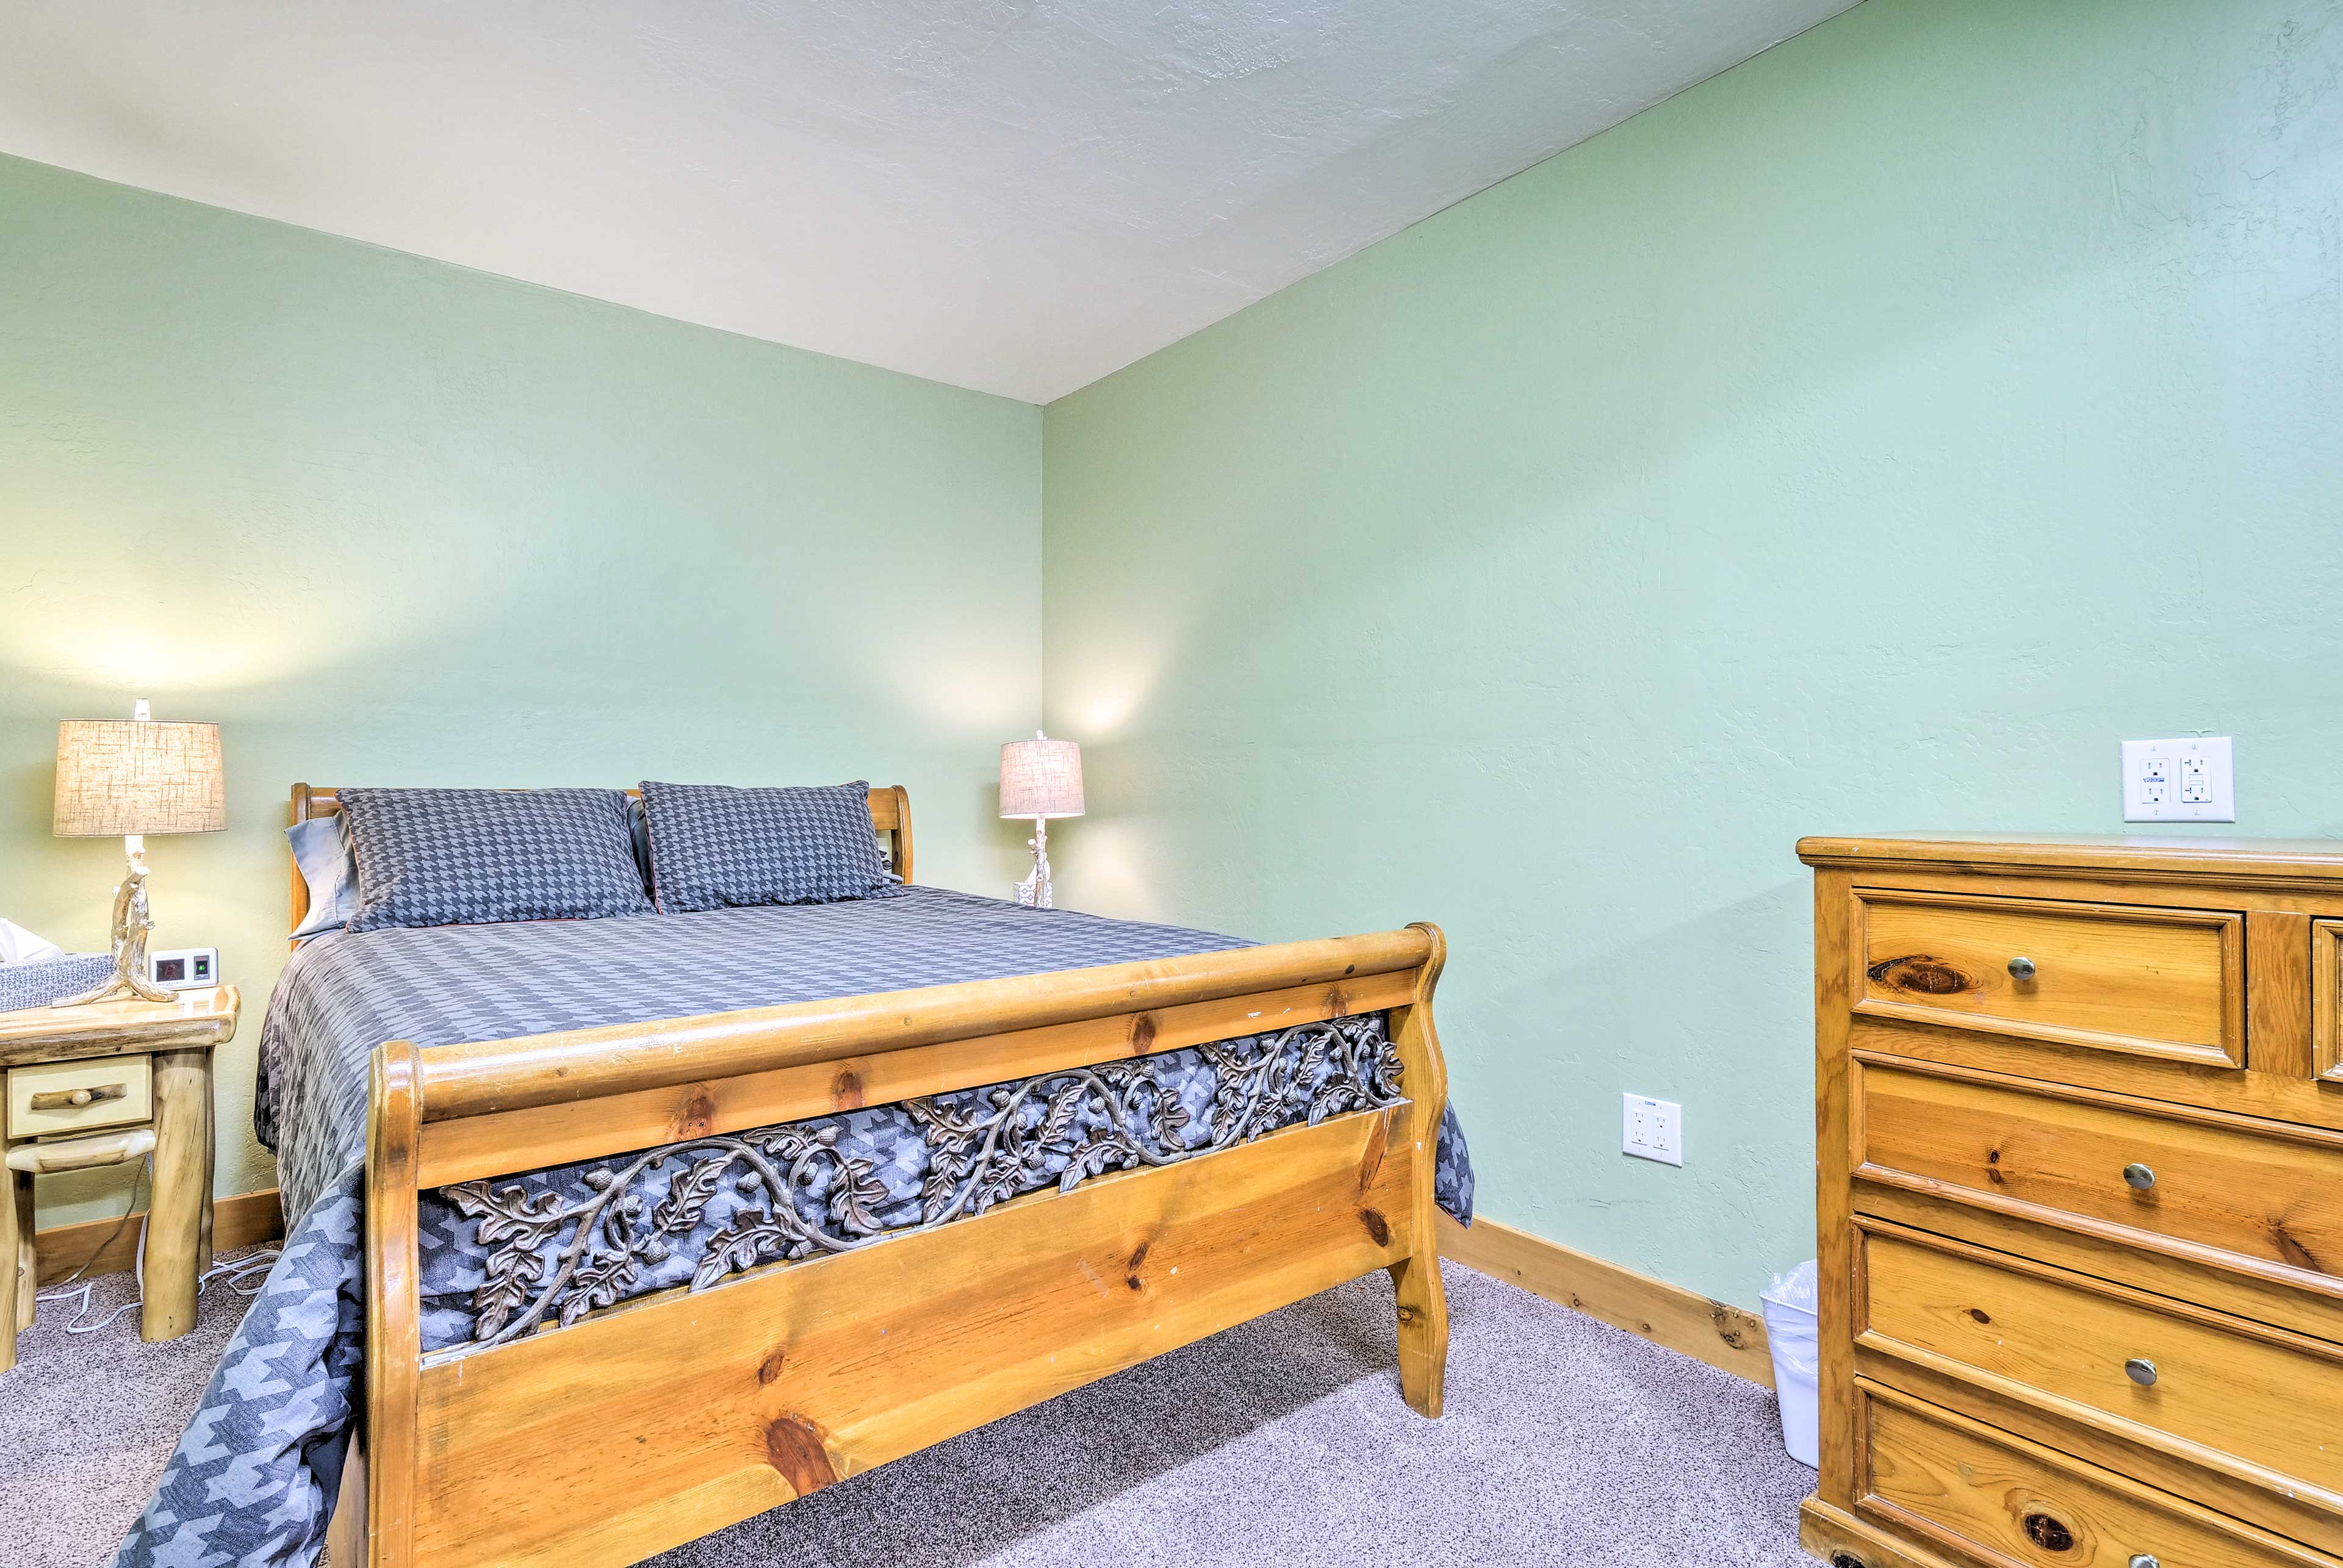 The space provides 8 twin beds and 1 queen bed.